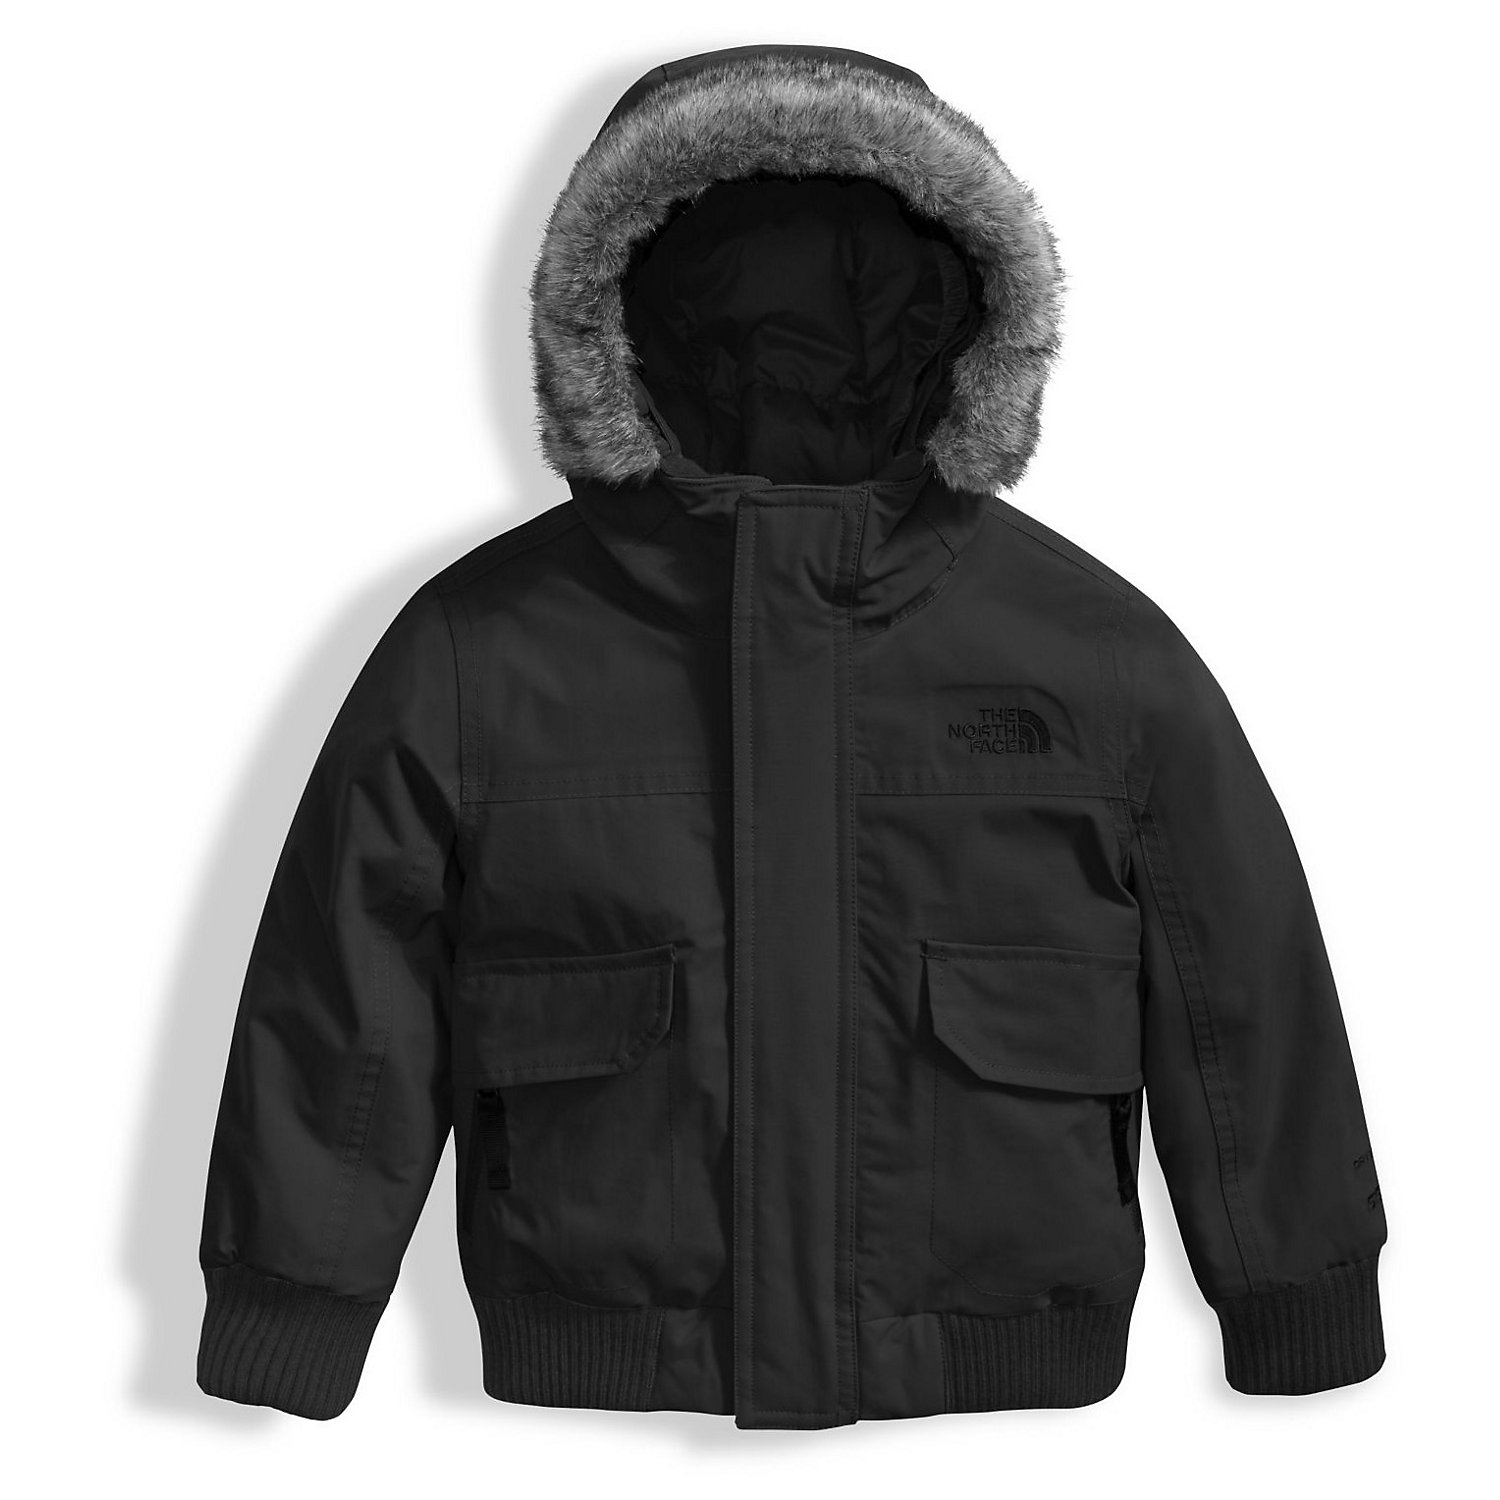 835e5308aff3 The North Face Toddler Boys  Gotham Down Jacket - Moosejaw